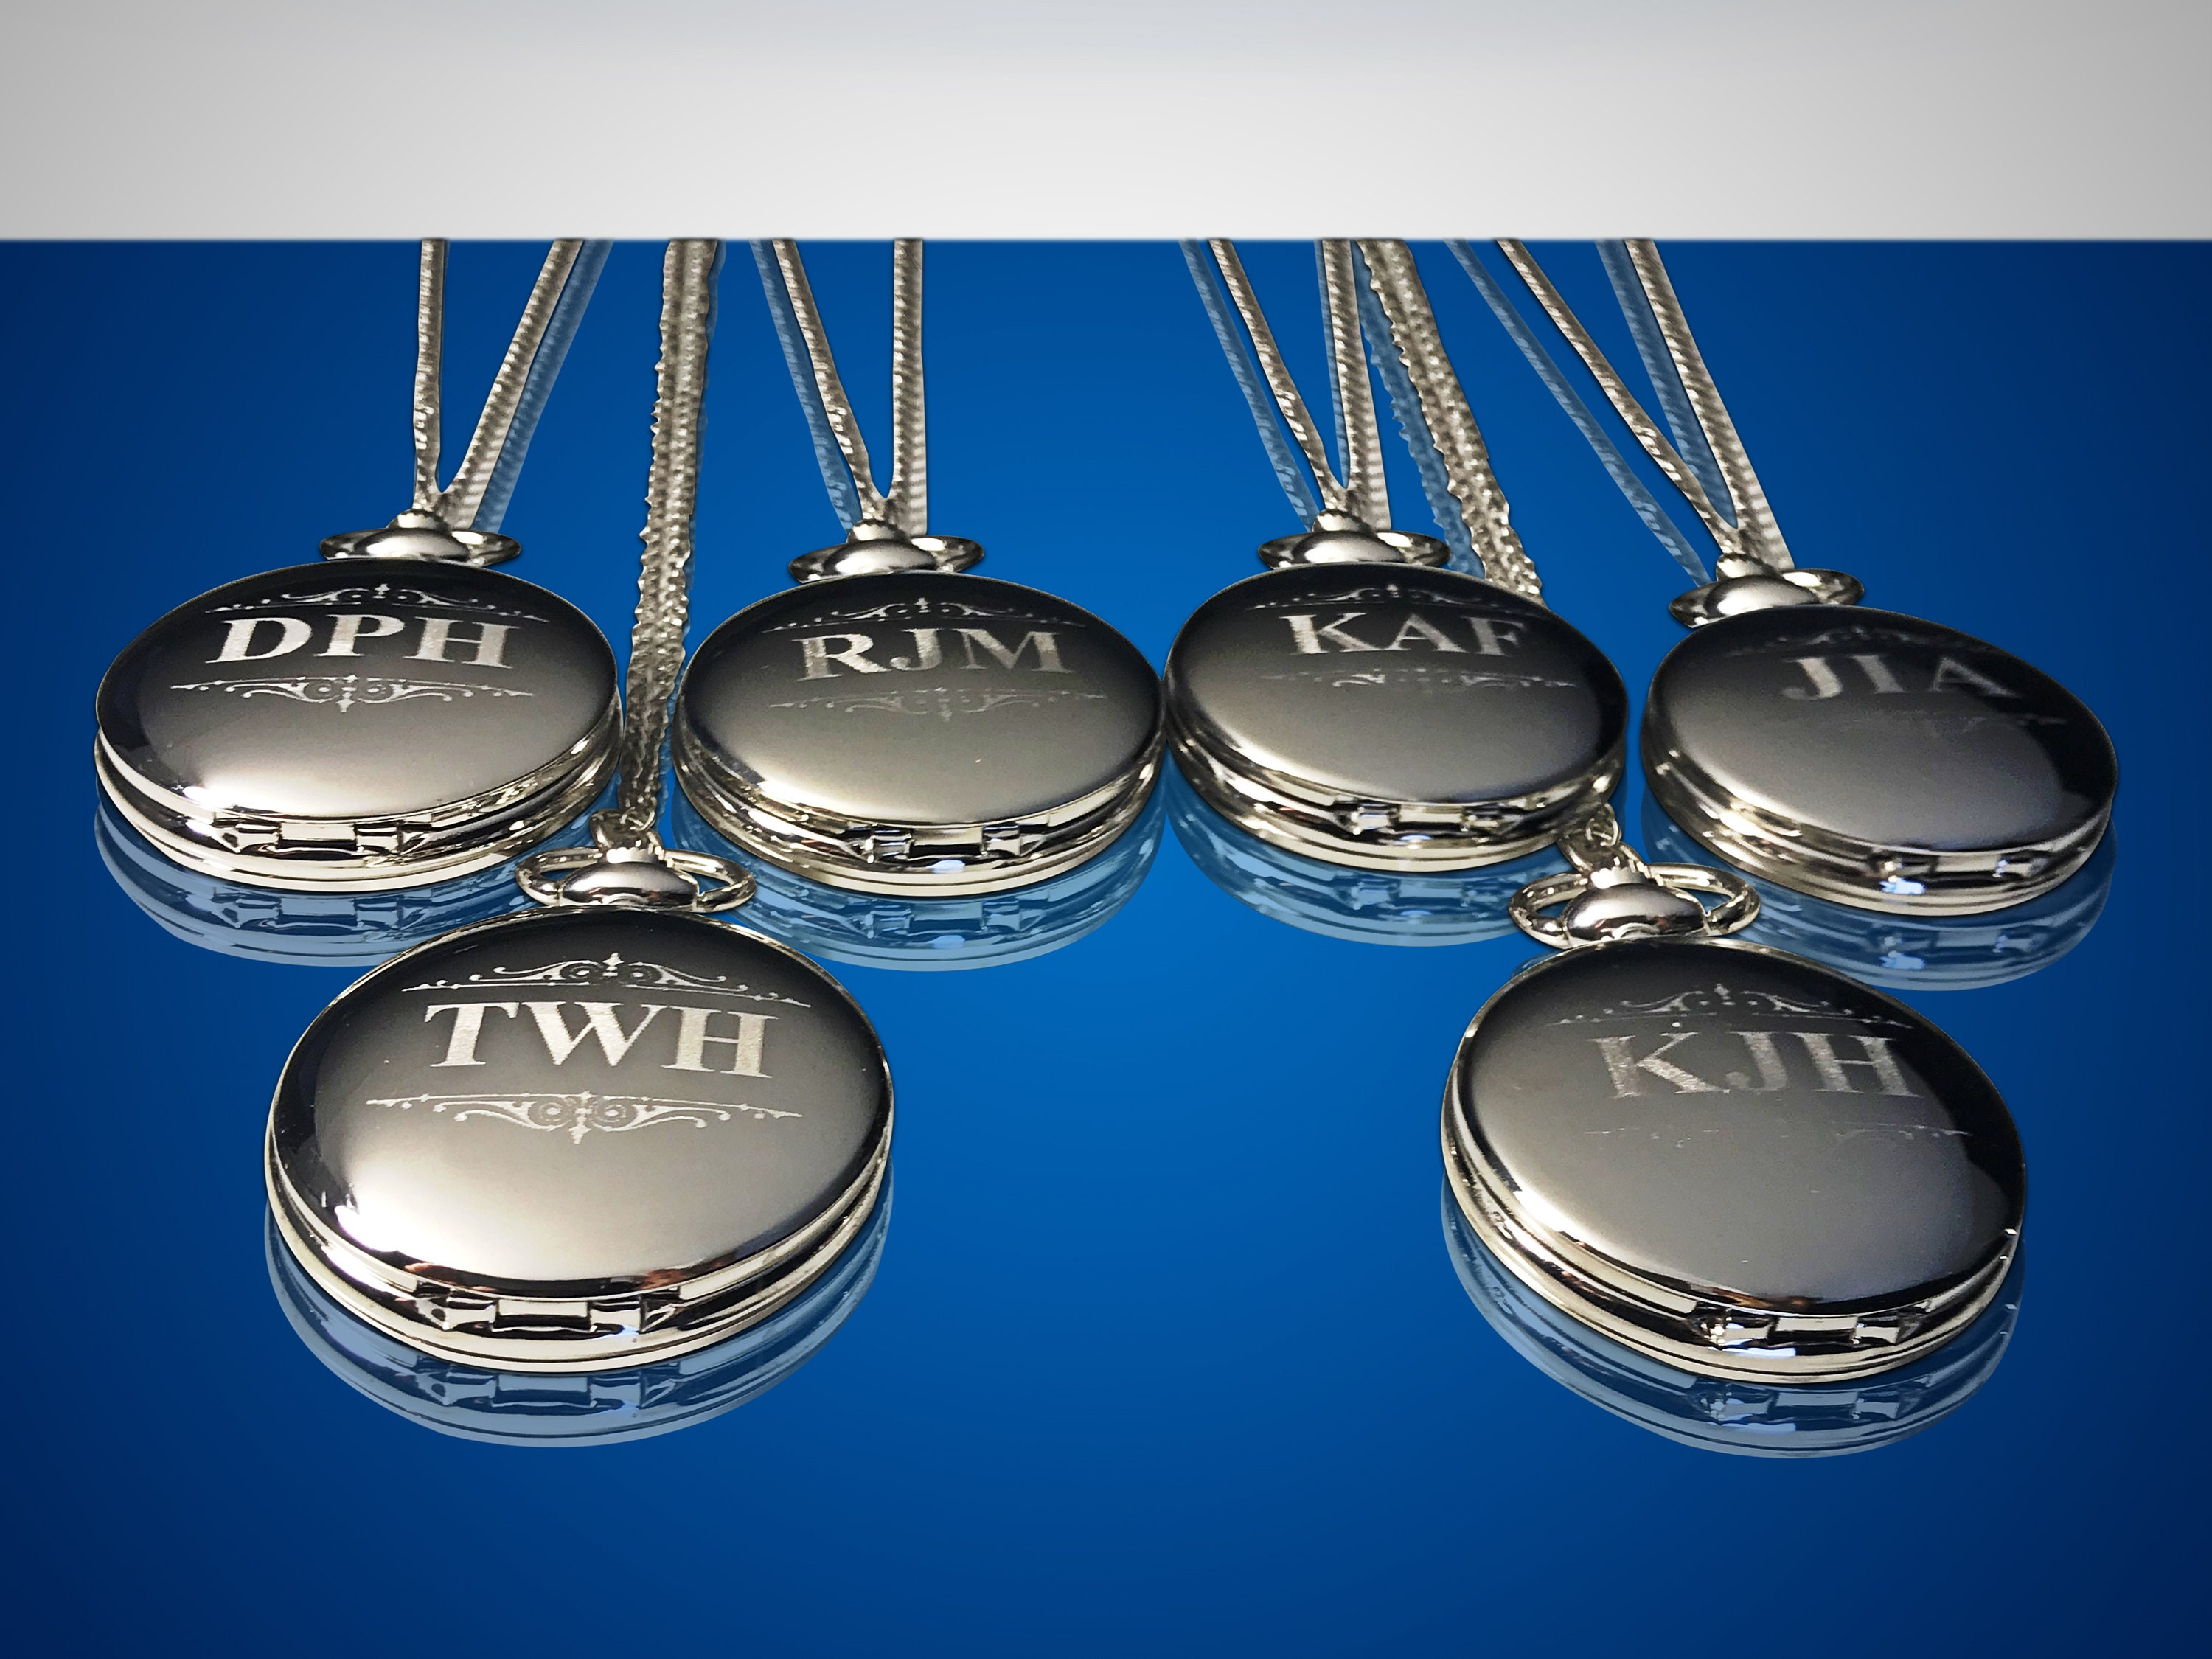 14 Groomsman gifts - Engraved pocket watches - 14 custom engraved pocket watches - Personalized engraved gift - Wedding gifts for him